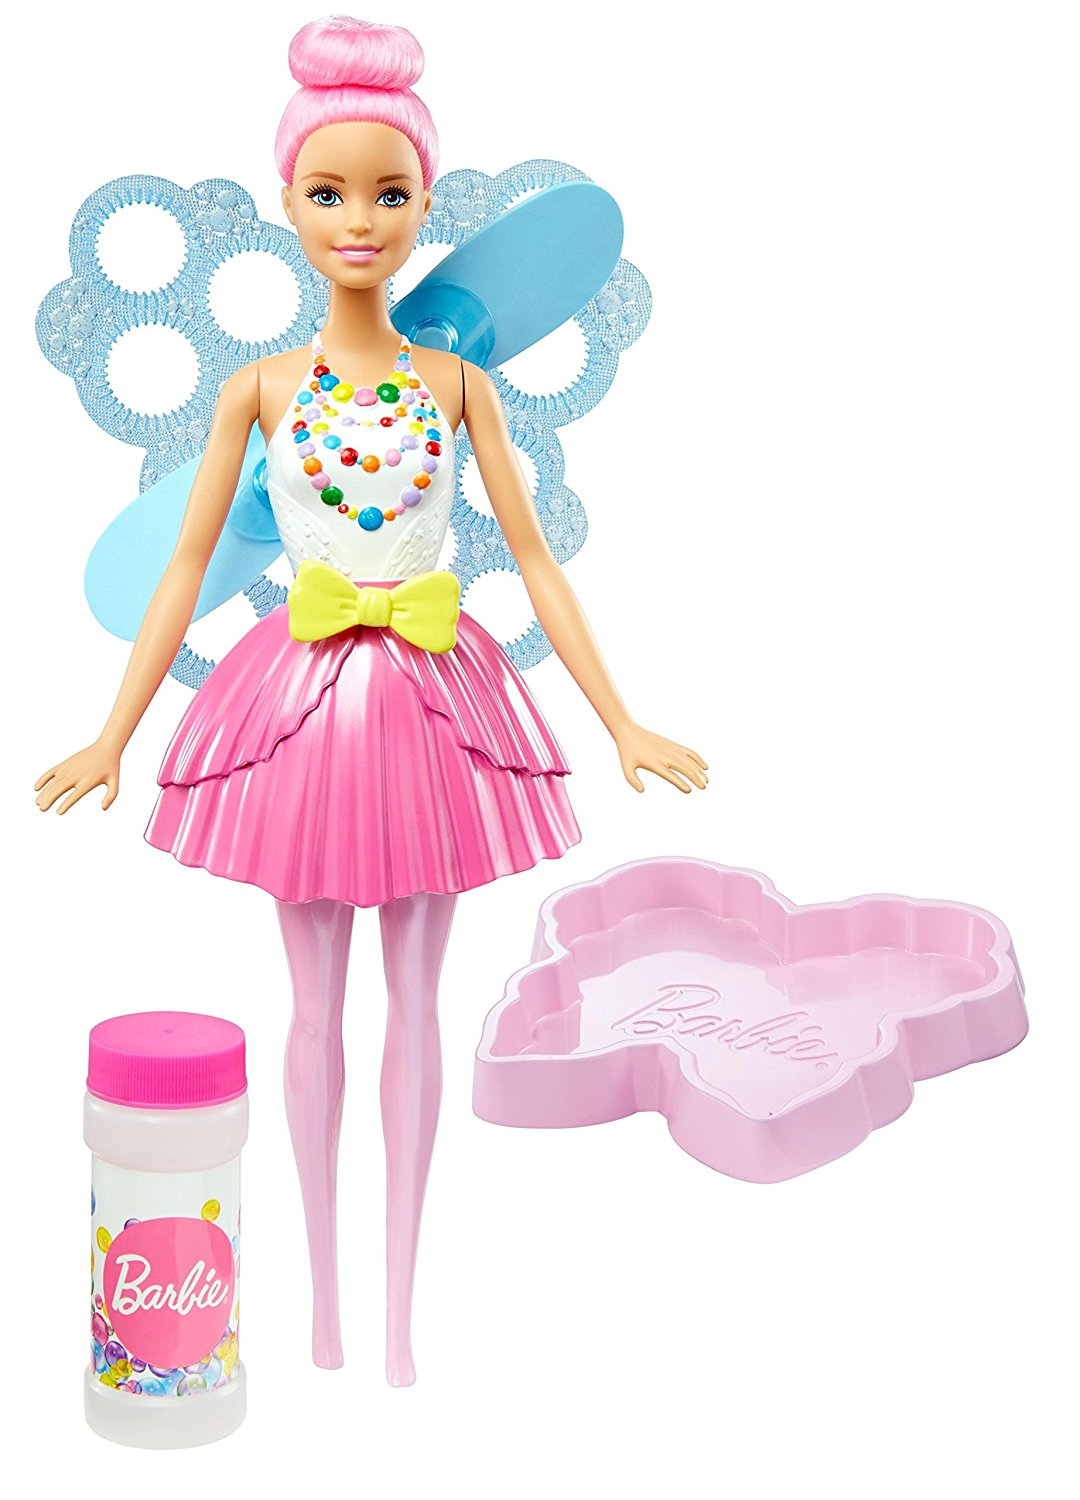 Dreamtopia Bubbletastic Fairy Doll, The make-believe land of Dreamtopia's Sweetville is full of... by